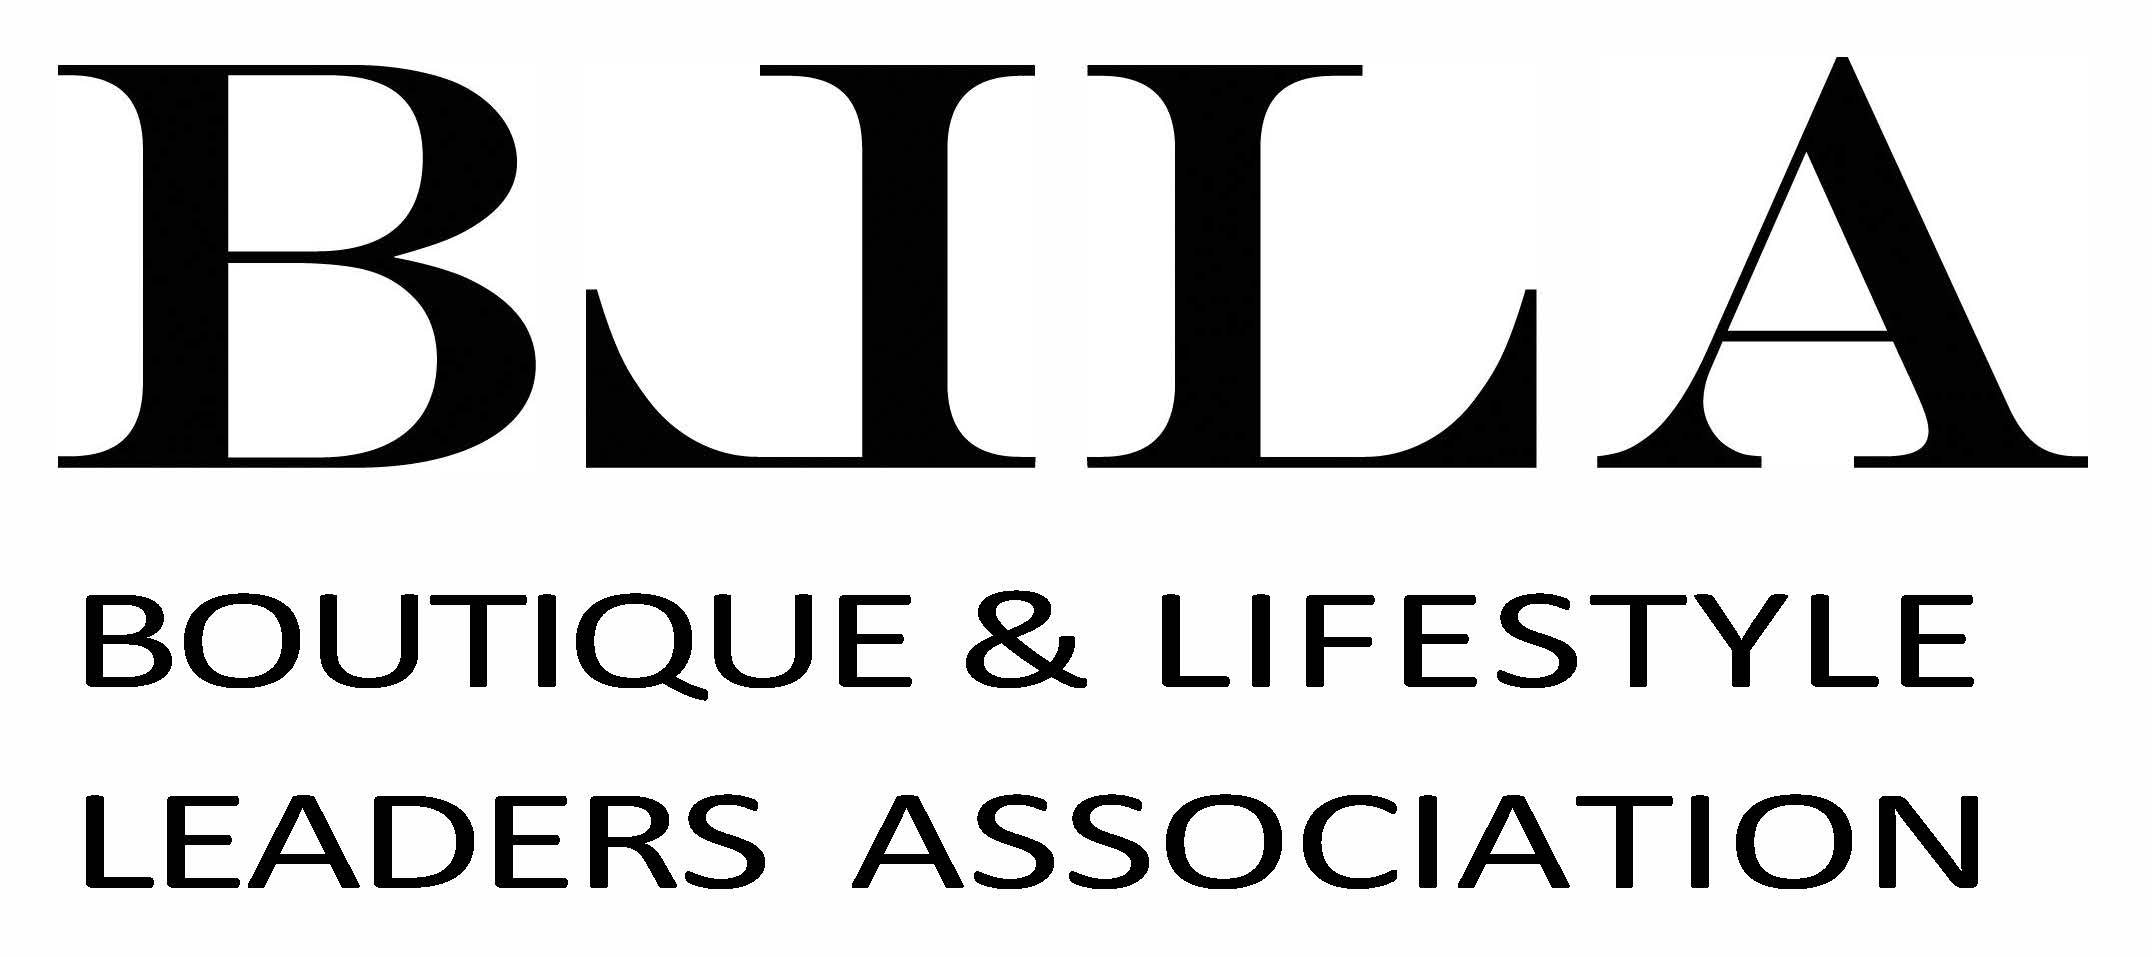 Boutique & Lifestyle Lodging Association (BLLA)